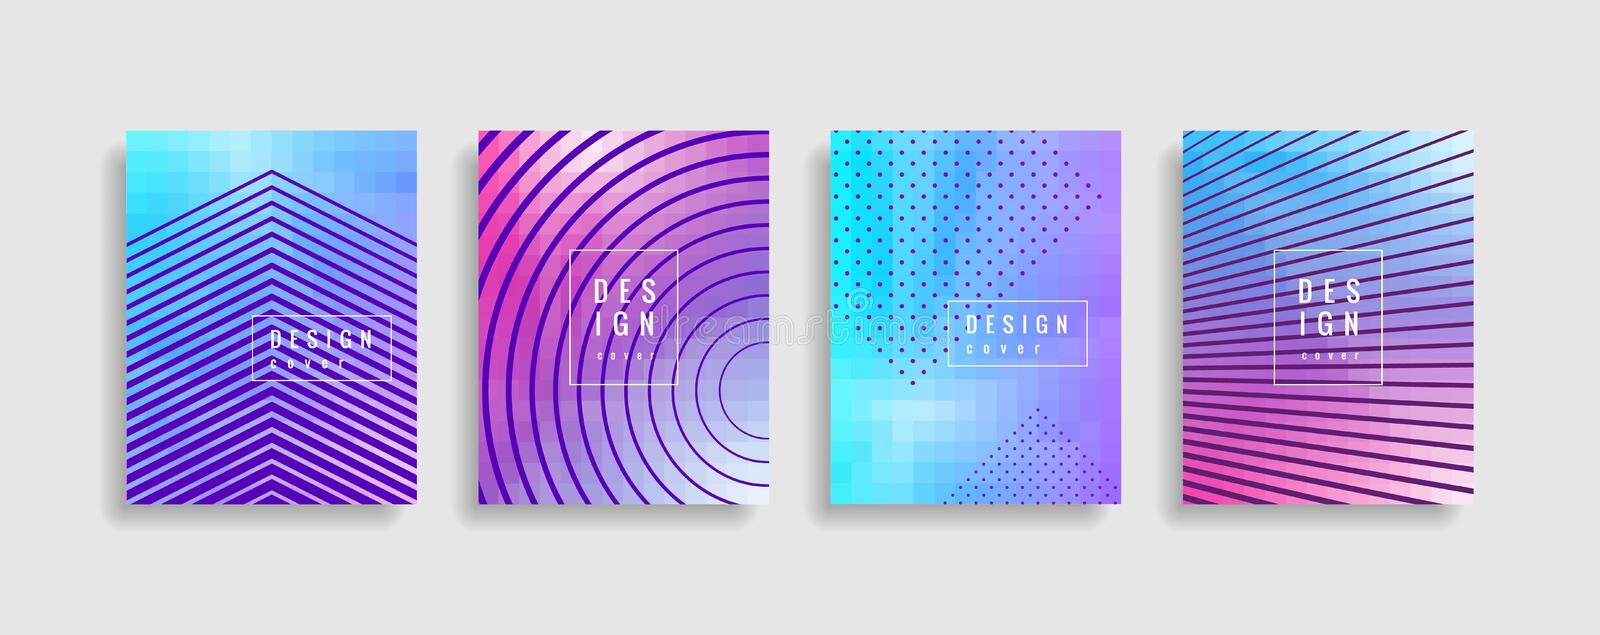 Minimal covers design. Colorful halftone gradients. Future geometric patterns. Eps10 vector. stock illustration